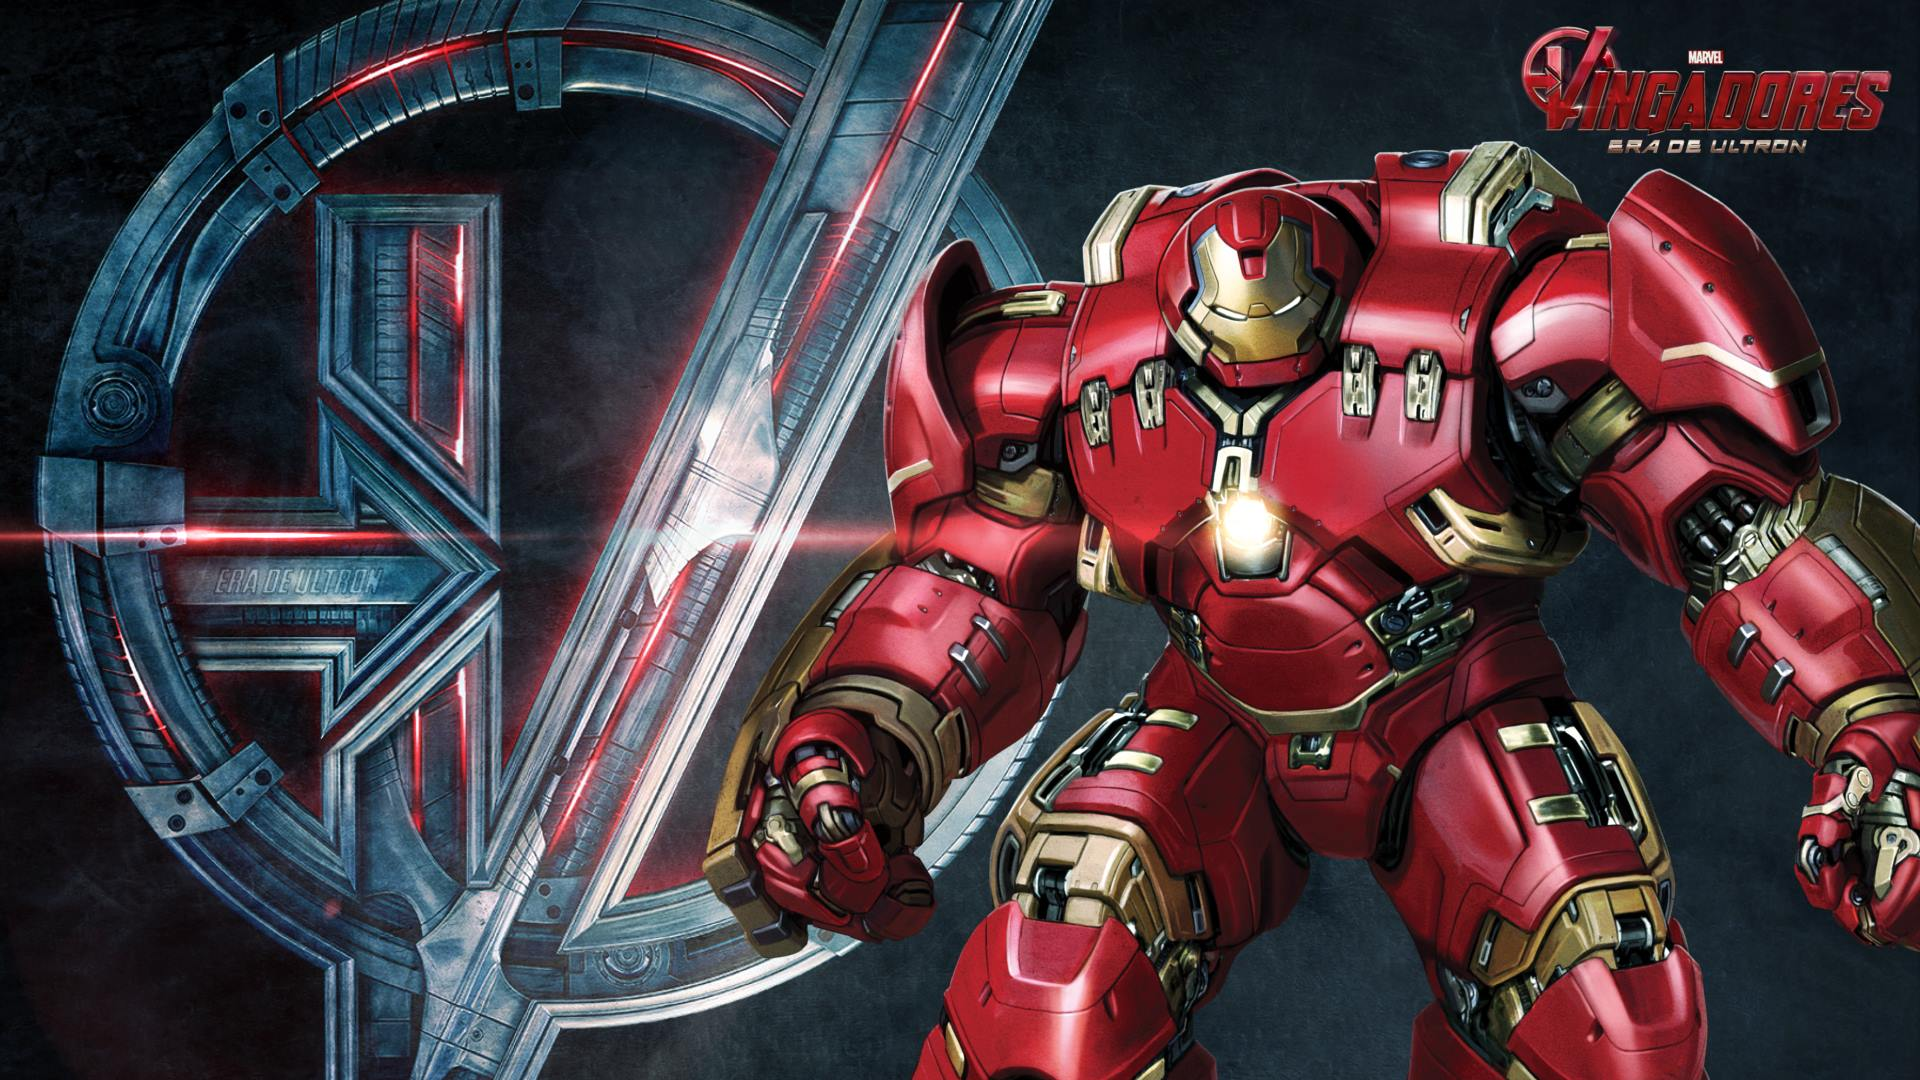 Of AVENGERS AGE OF ULTRON Get Stylish Promo Art Character Wallpapers 1920x1080